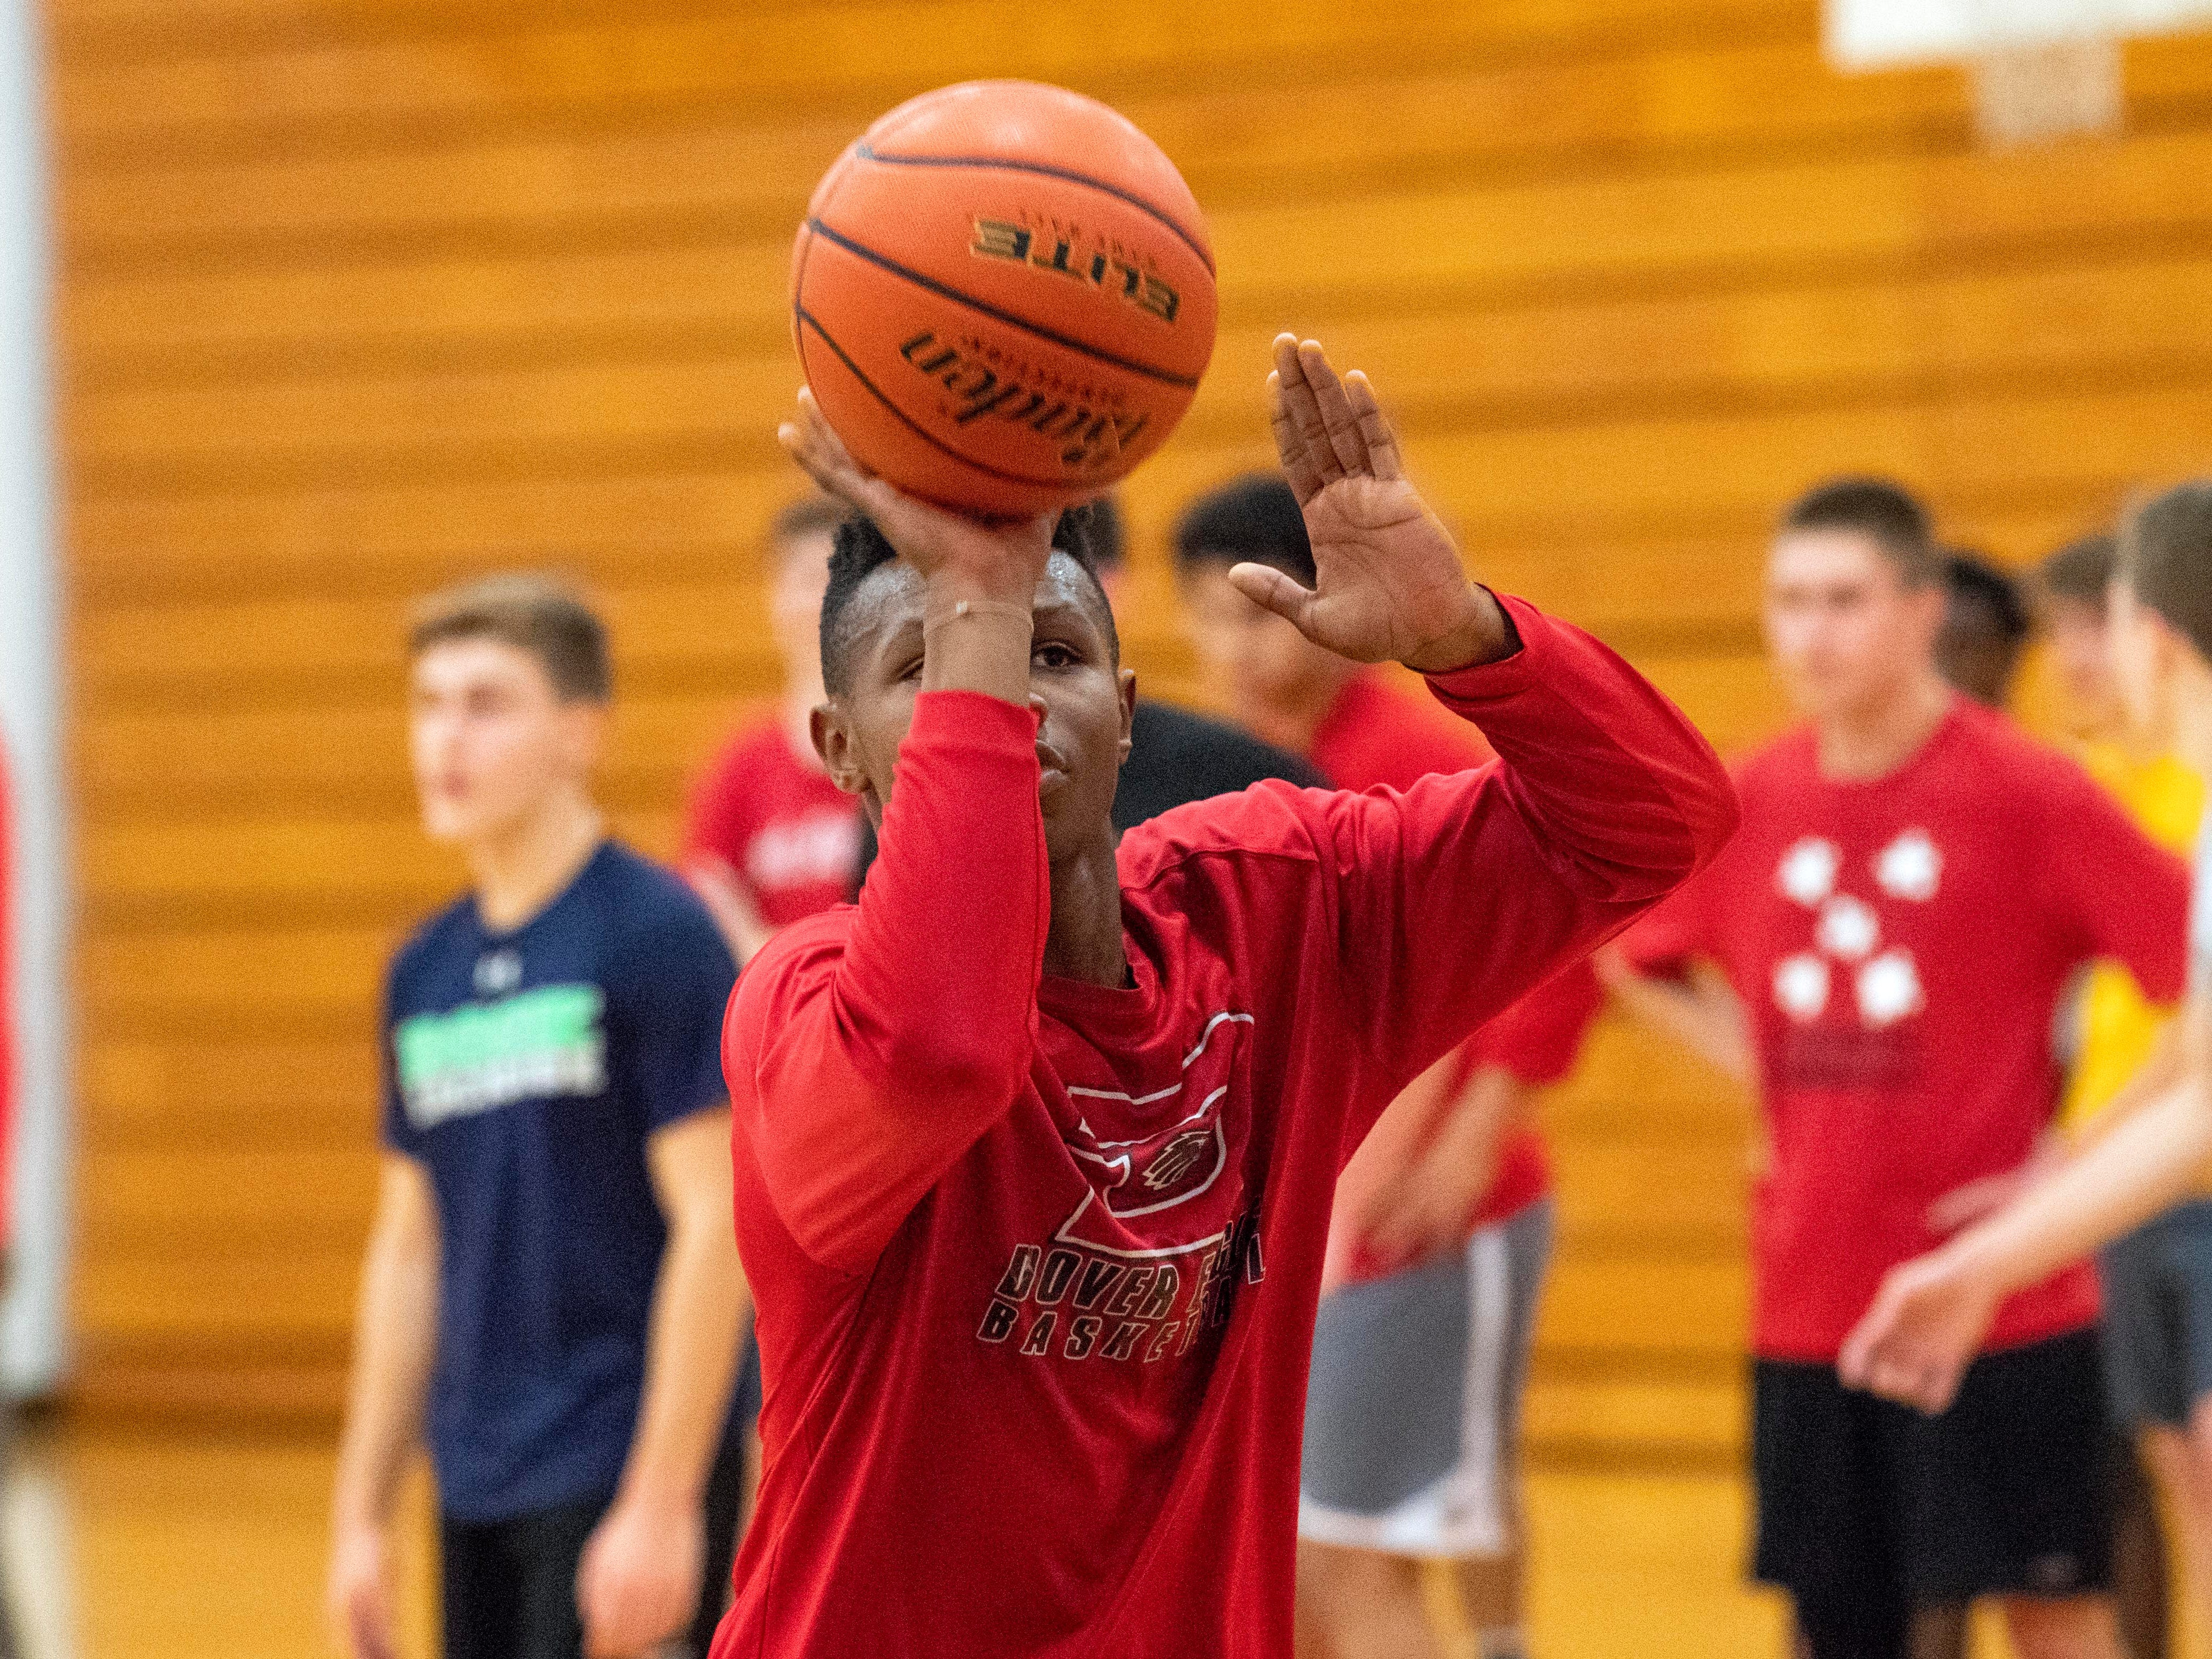 Dover boys' basketball practices shooting during the first official day of winter sports practice on Friday, November 16, 2018.